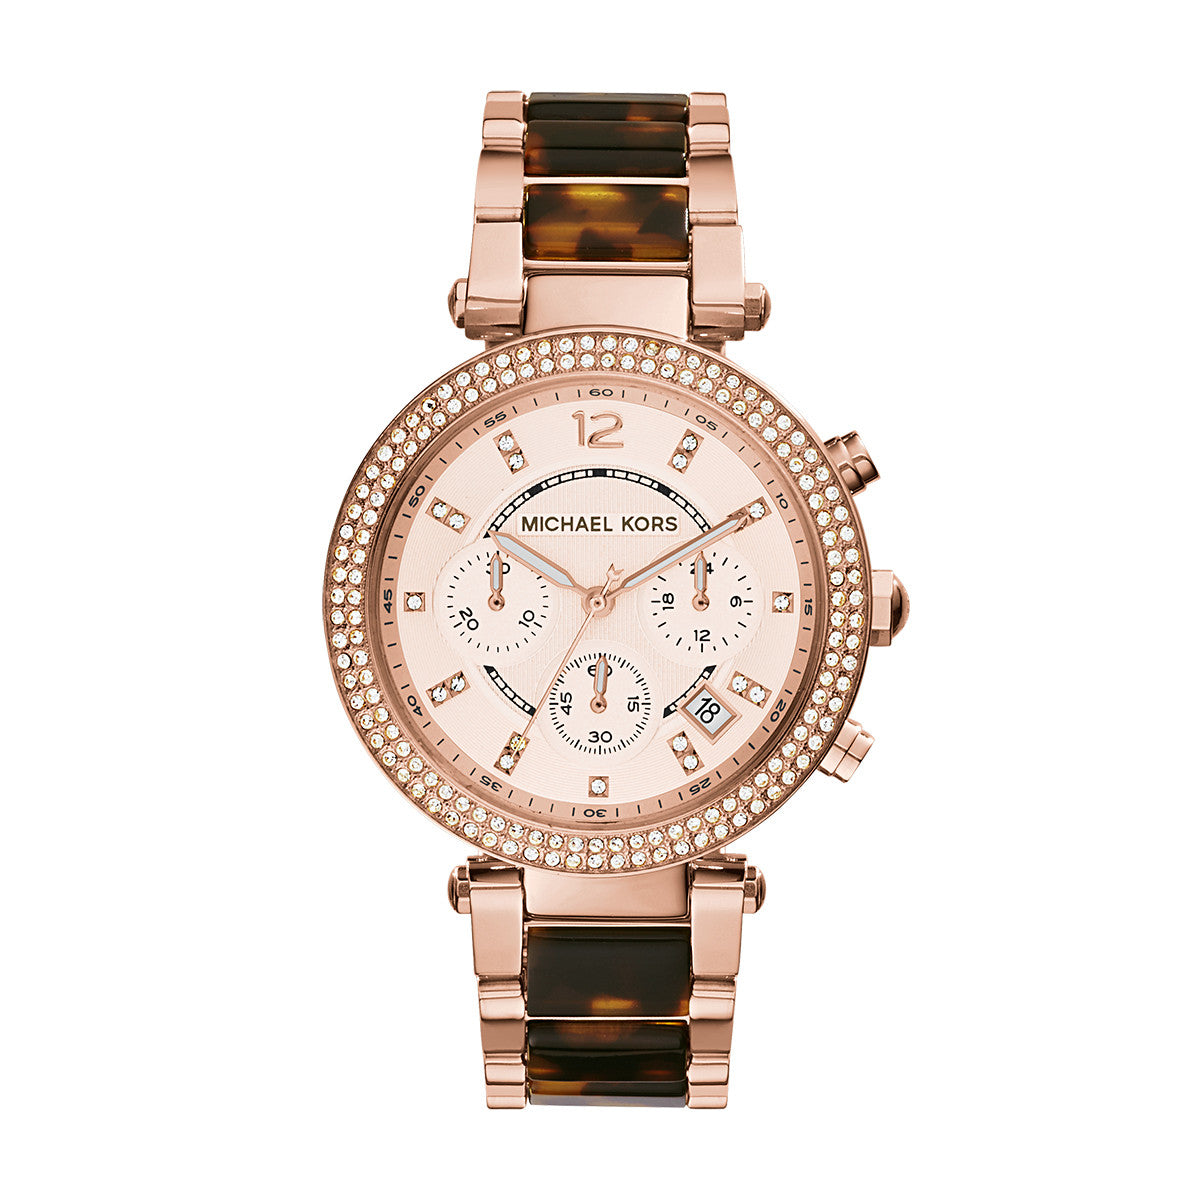 06e00cda9 Parker Tortoise Acetate and Rose Gold-Tone Stainless Steel Watch – Little  Switzerland